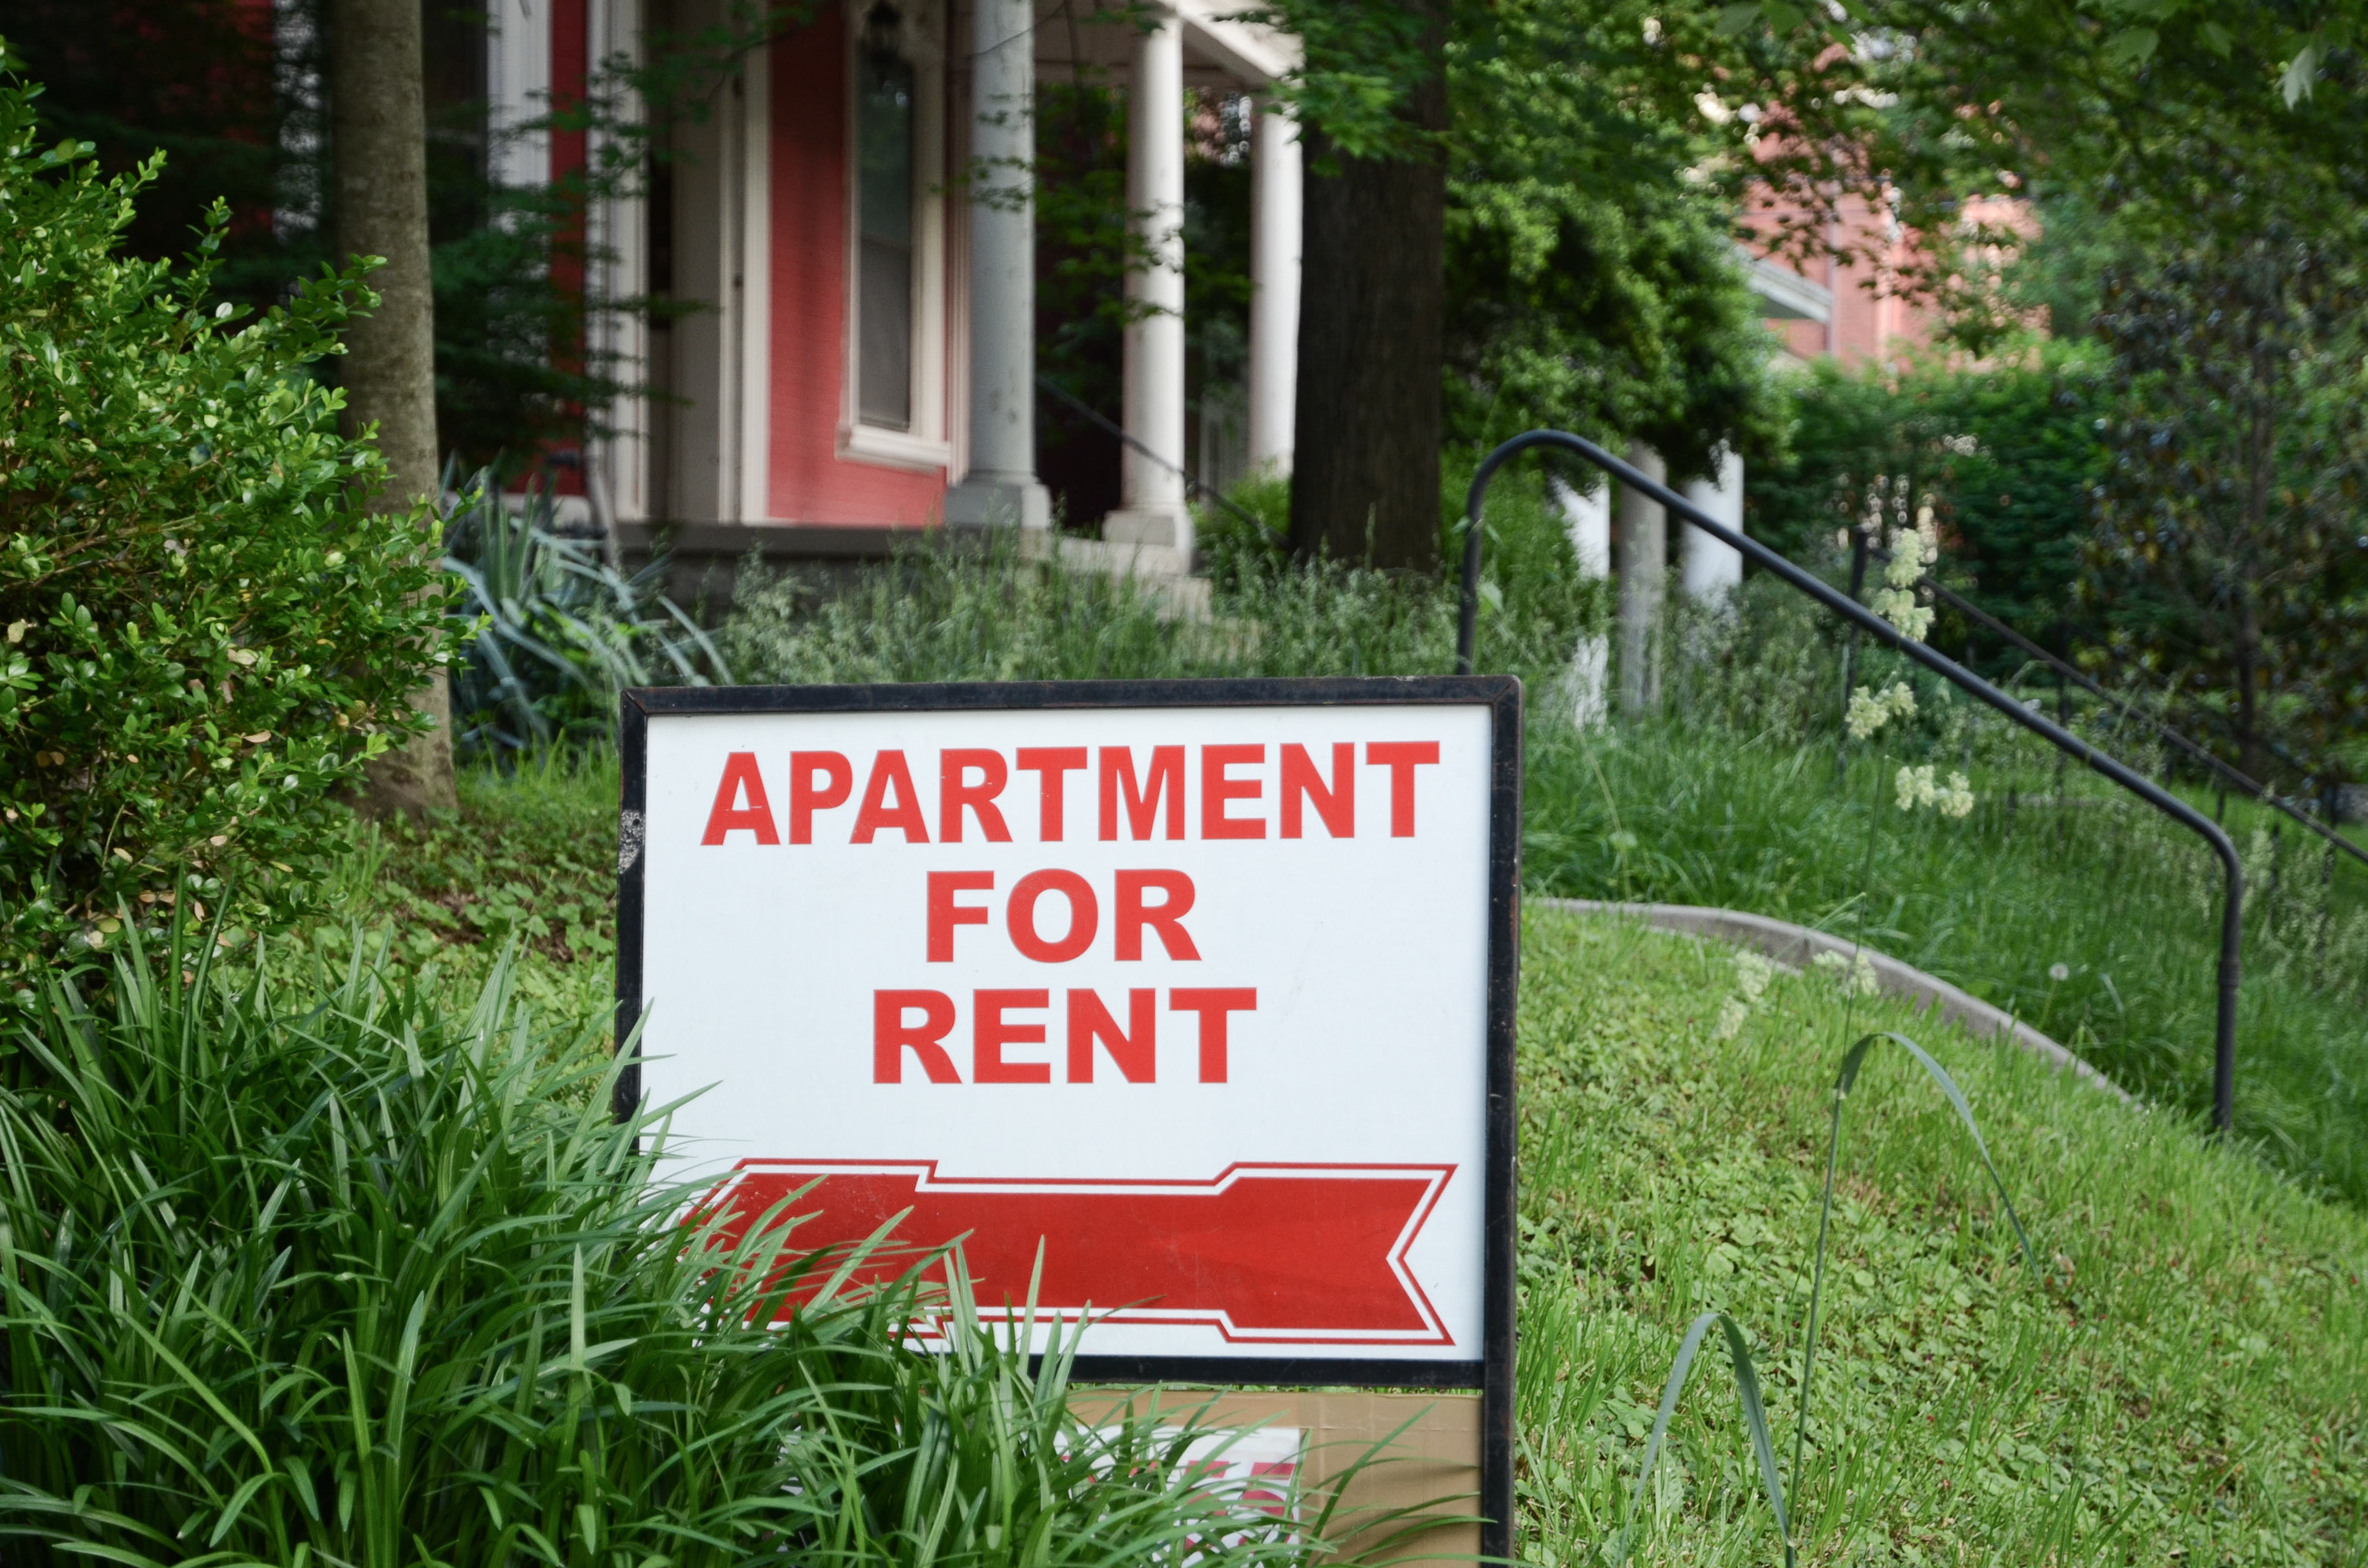 How to Rent an Apartment With an Eviction | Home Guides | SF Gate